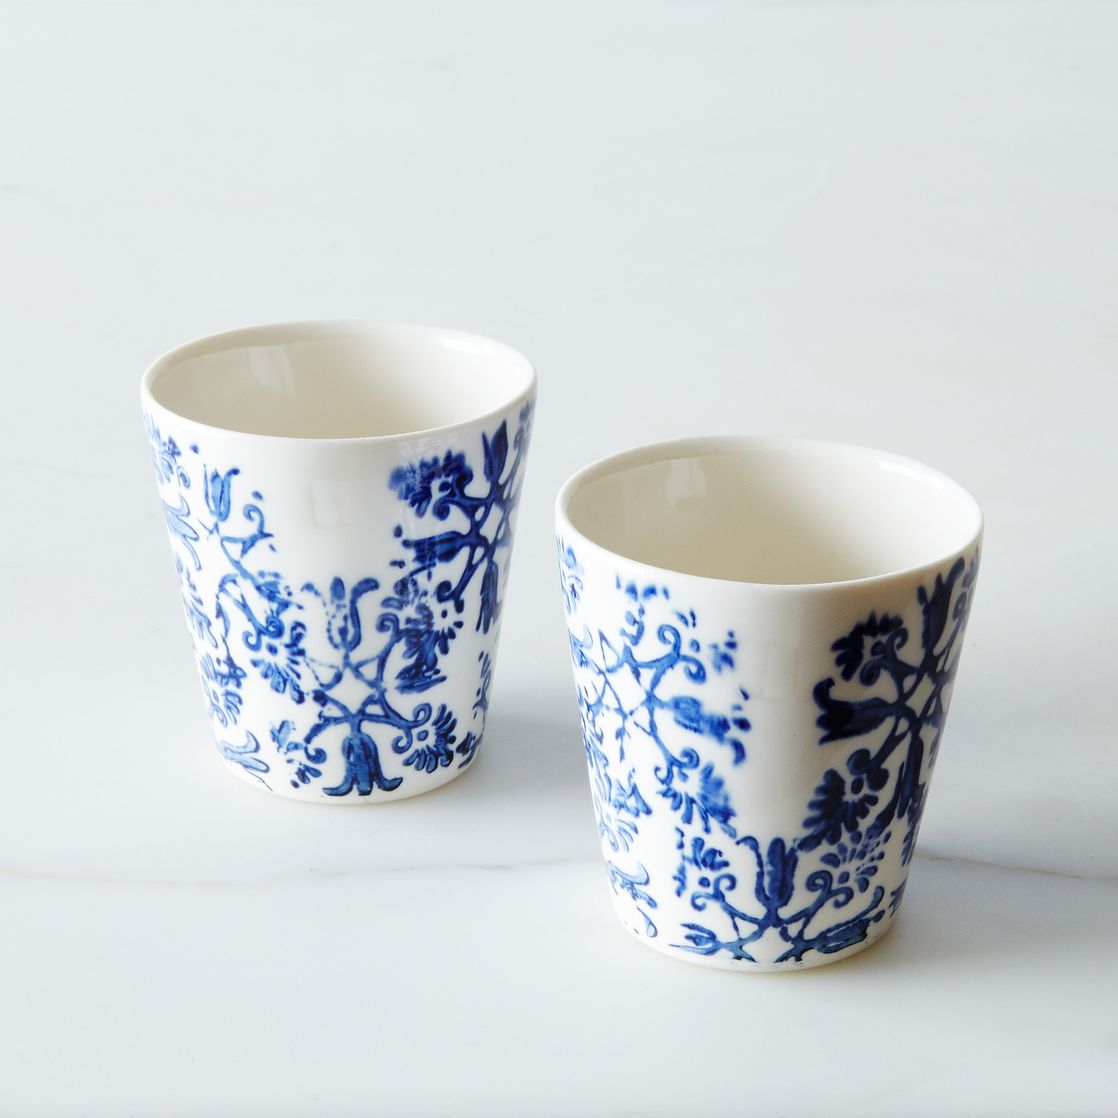 Floral Espresso Cups (Set of 2) - Small Ceramic Cups -- Mugs & Glassware - Art et Manufacture | Shop Food52 on Food52